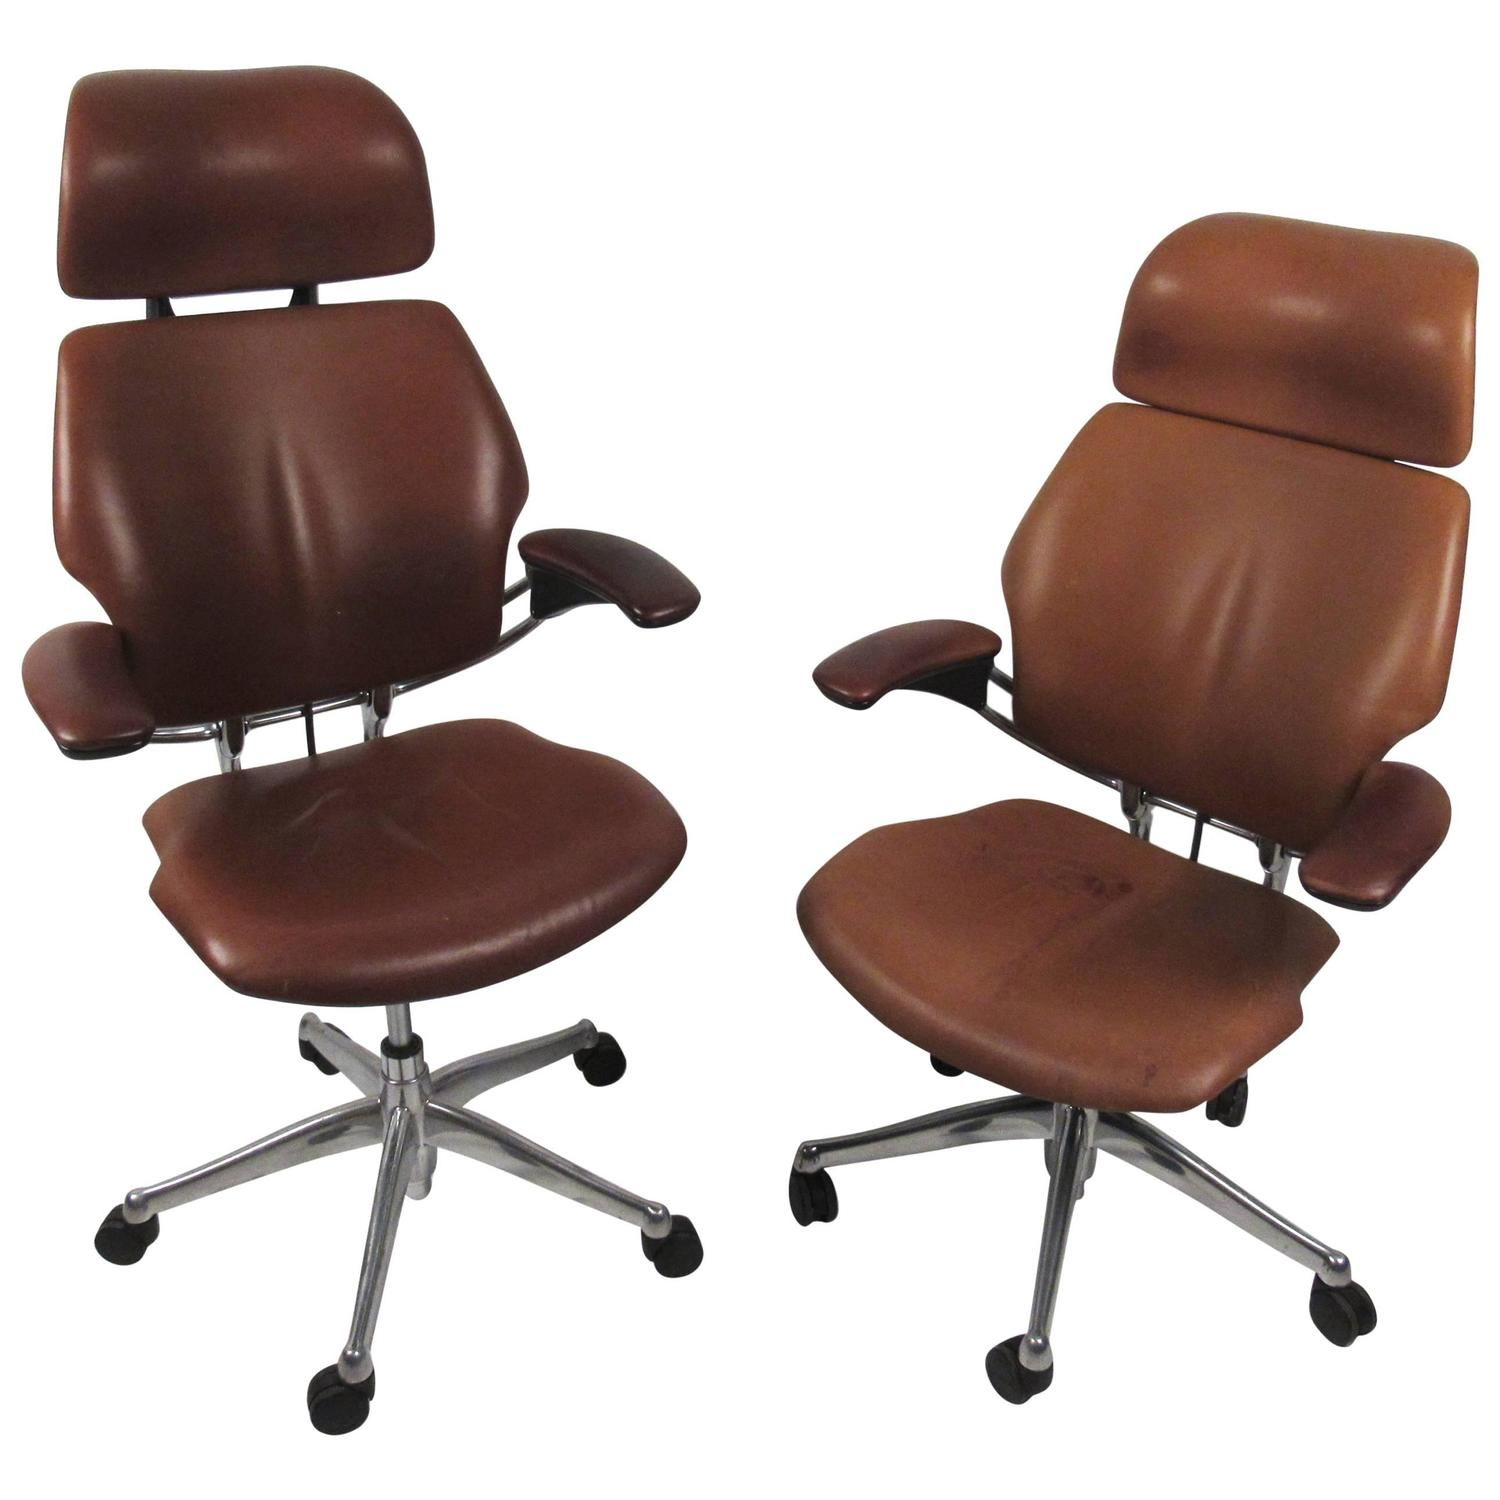 Midcentury Style Ergonomic Leather Swivel Desk Chair